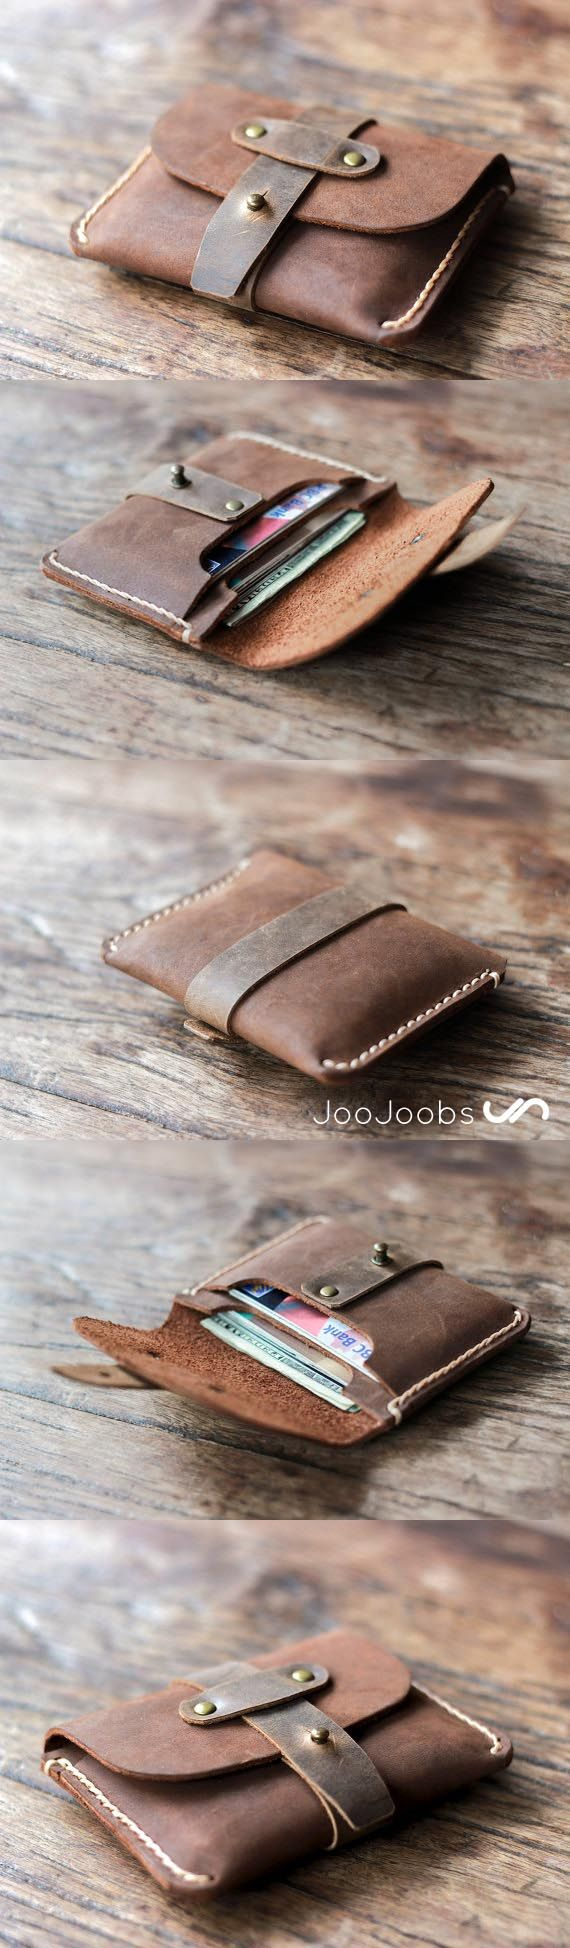 Personalized, Handmade Leather Wallet. Makes for an Awesome Gift, Introducing the Treasure Chest Credit Card Wallet by the folks at JooJoobs.